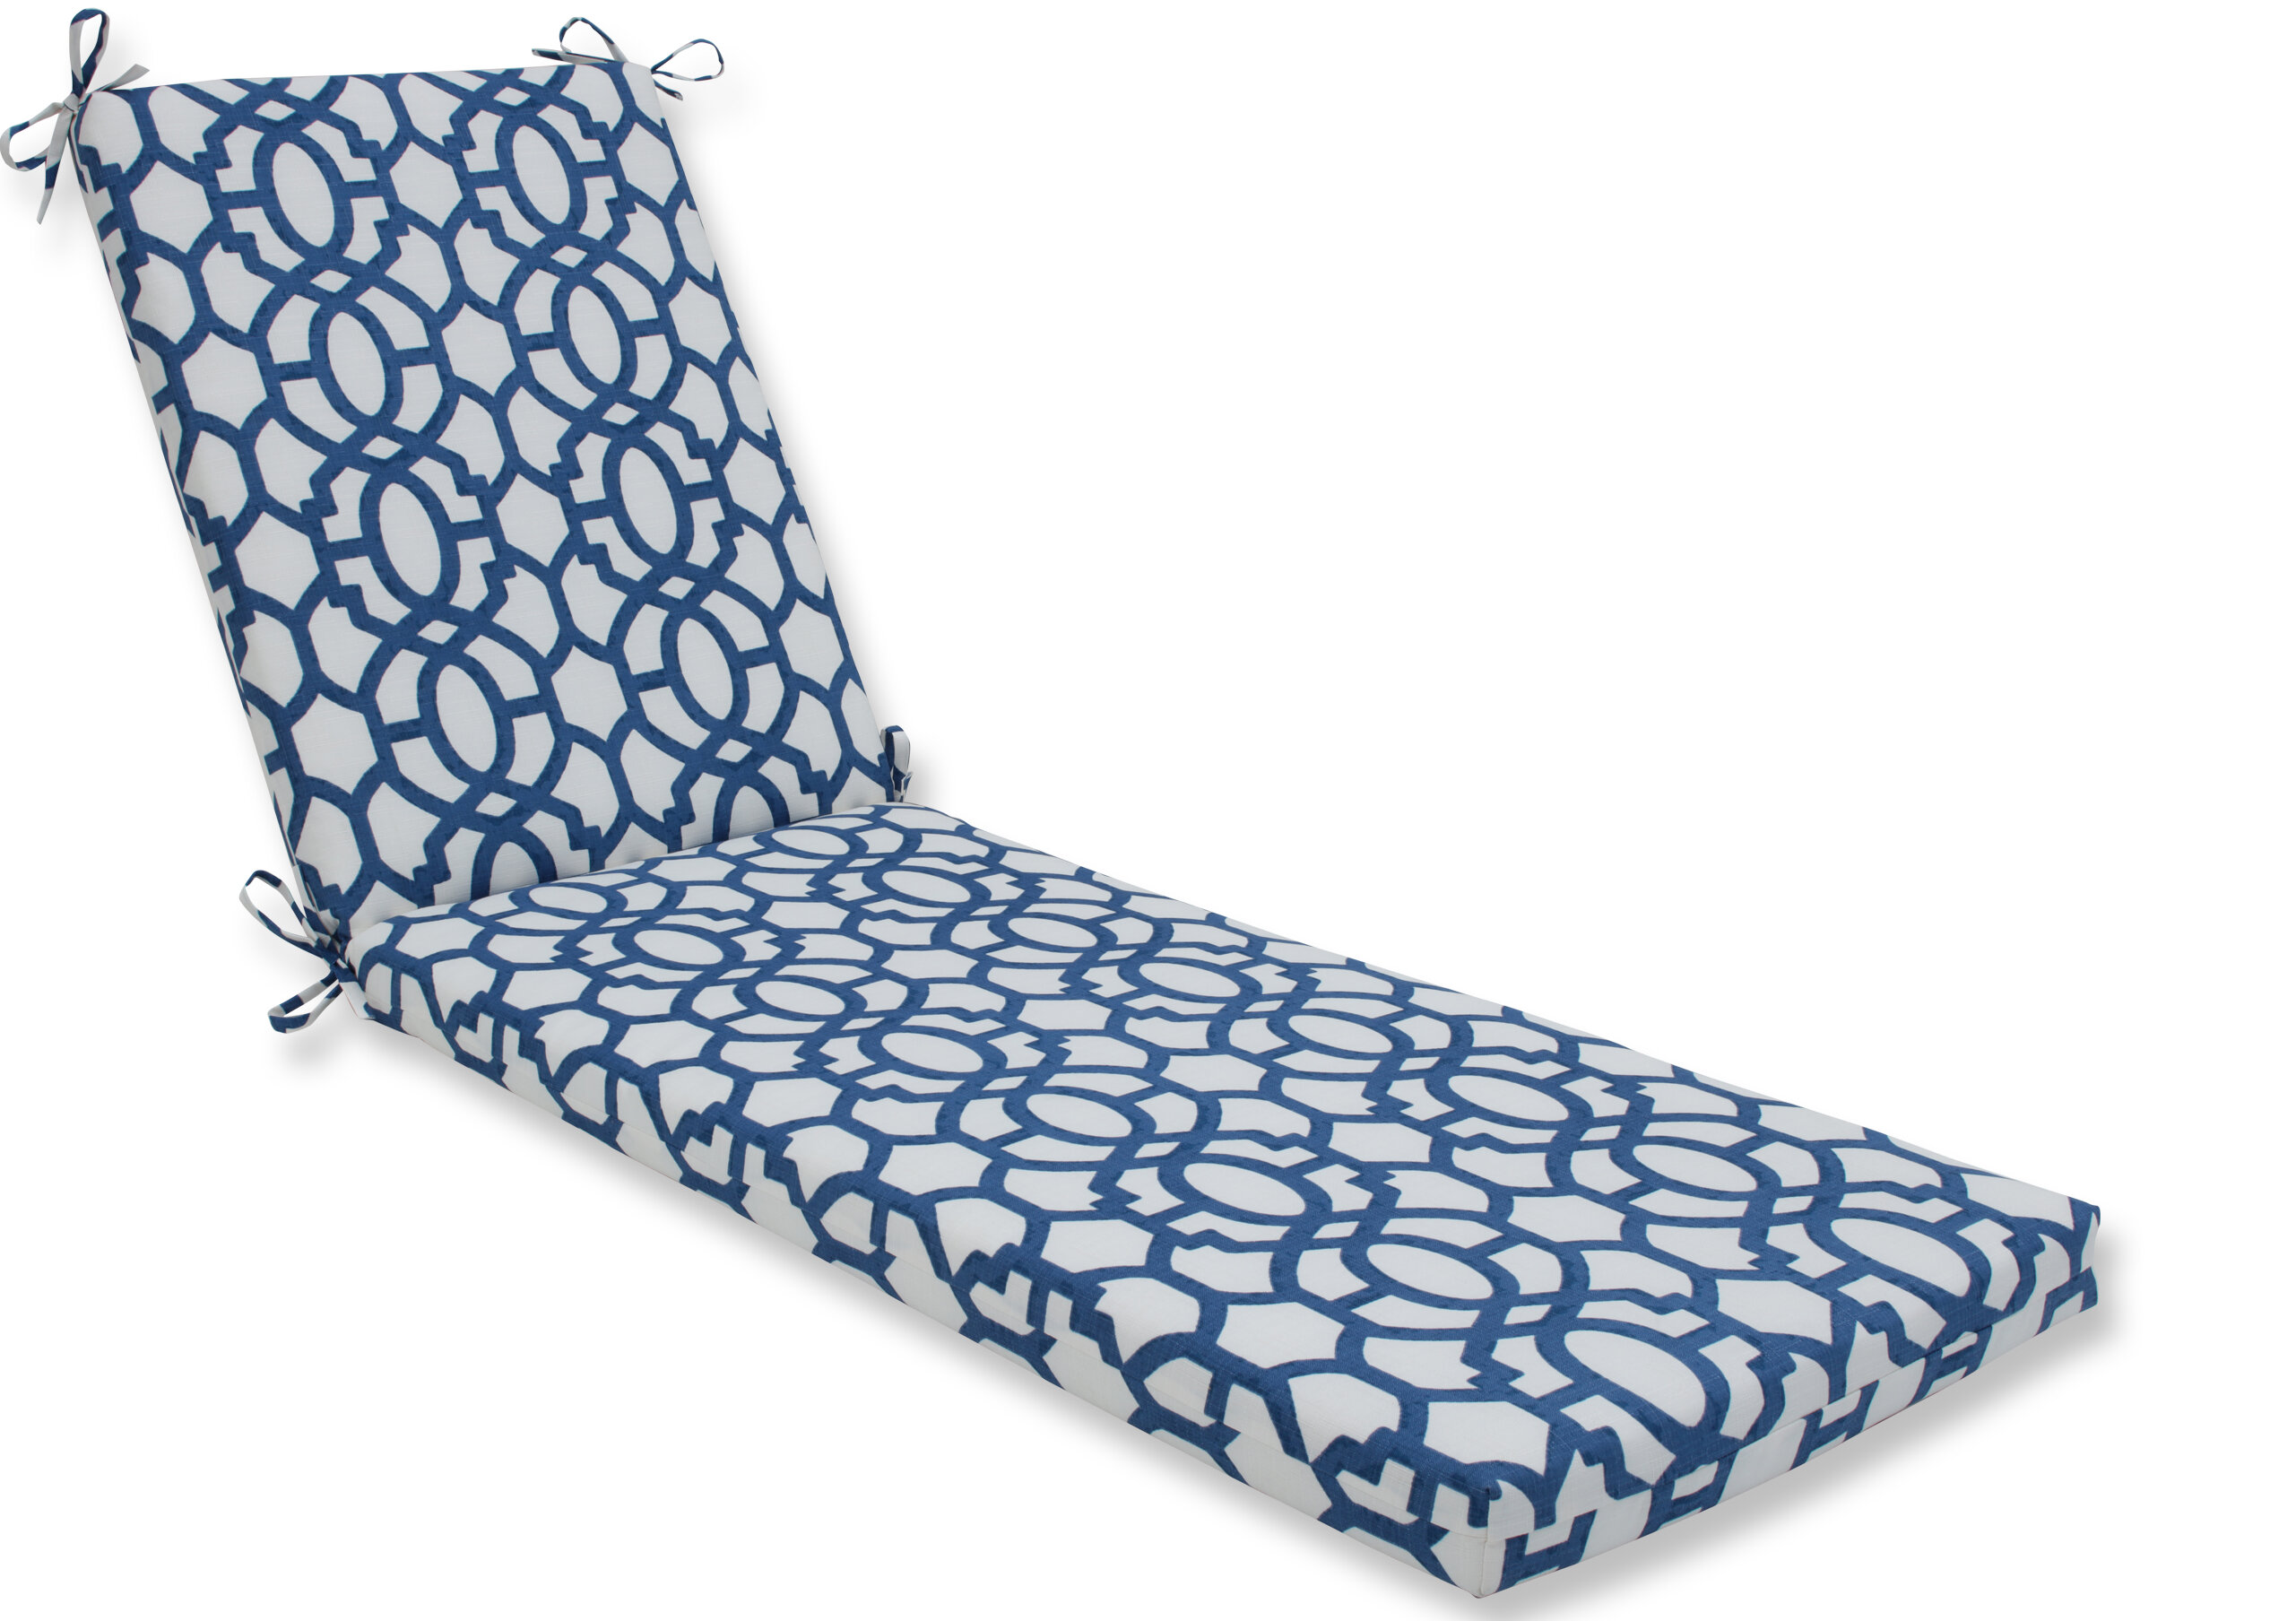 Indoor Outdoor Chaise Lounge Cushion Reviews Birch Lane